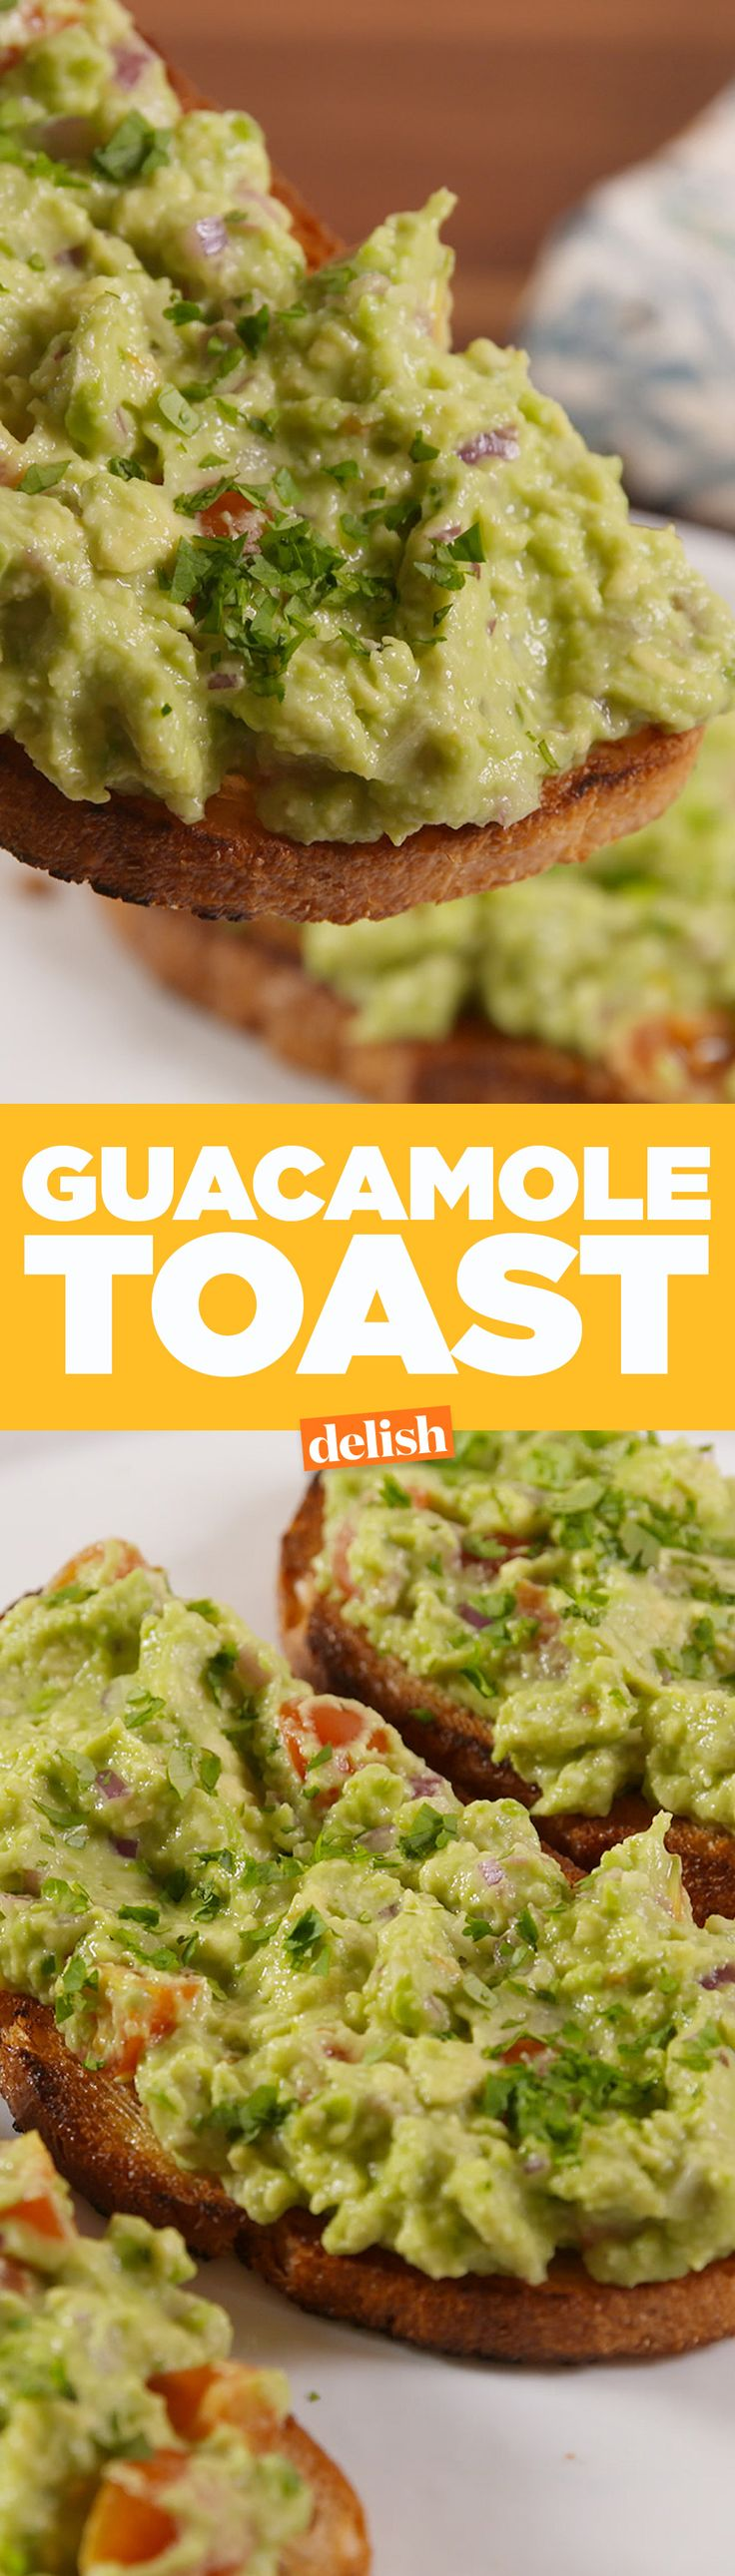 Guacamole Toast is the upgrade your avocado toast needs. Get the recipe from Delish.com.